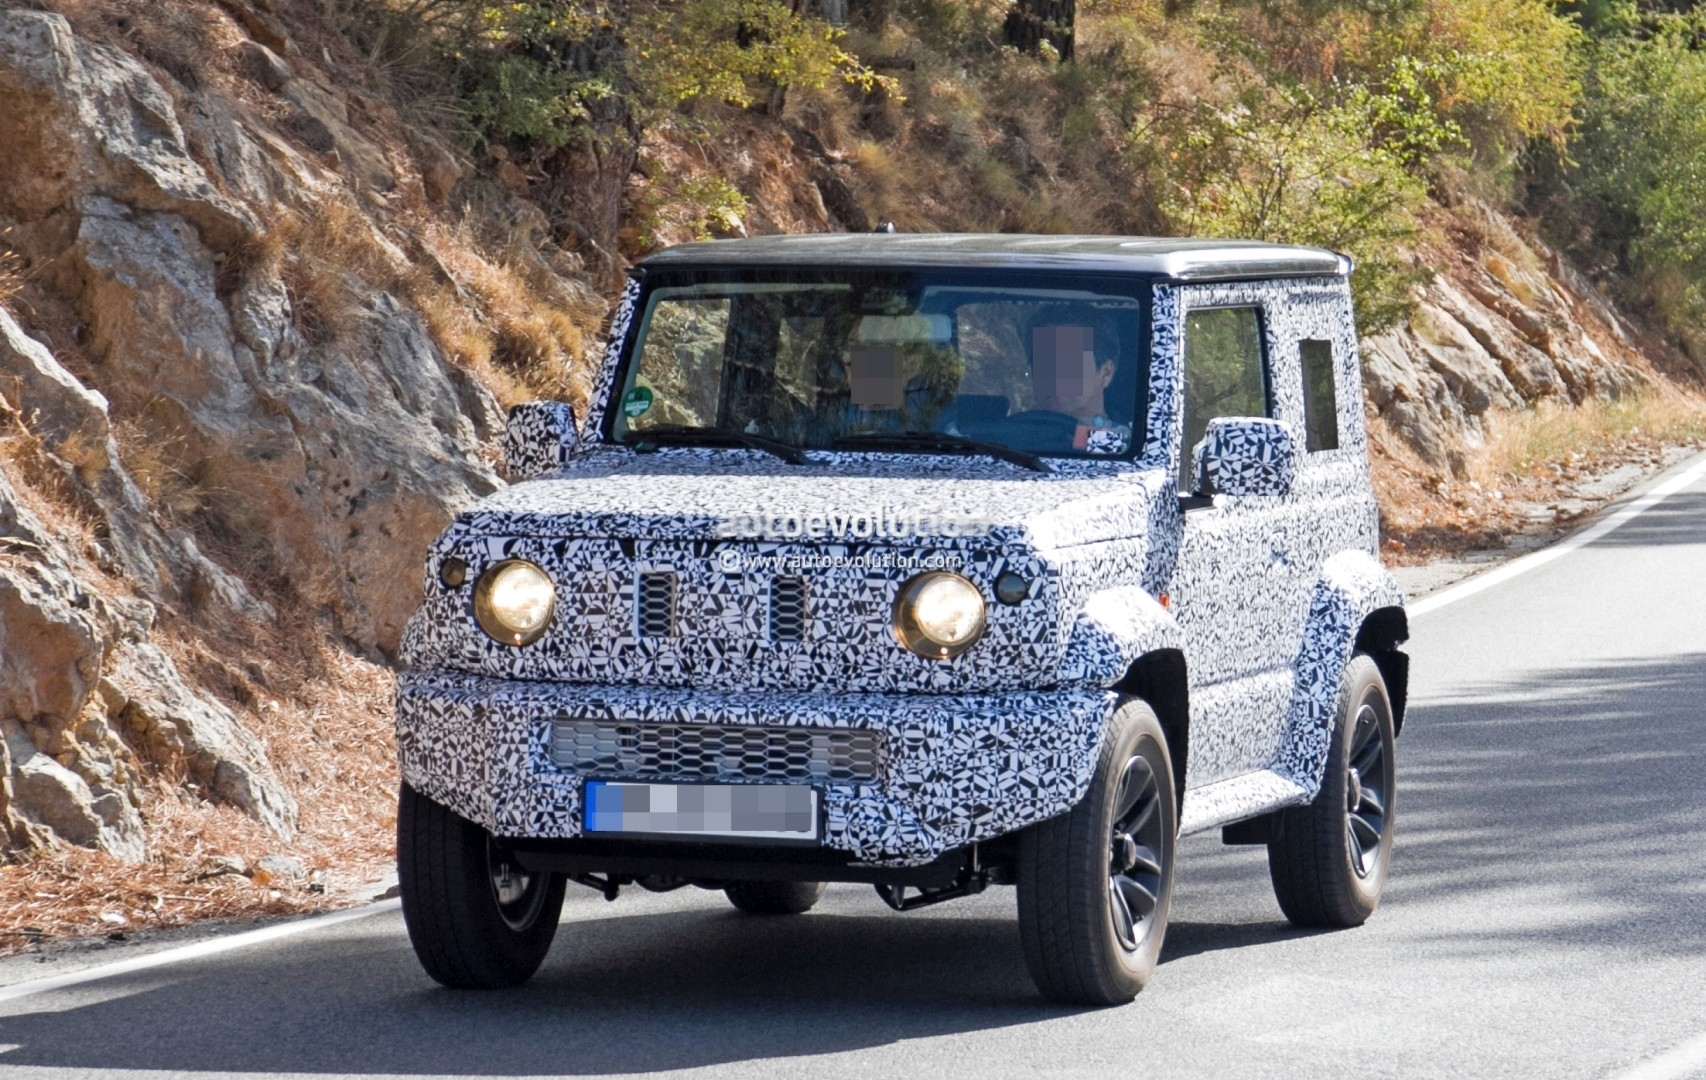 spyshots new suzuki jimny looks like a tiny mercedes benz g class autoevolution. Black Bedroom Furniture Sets. Home Design Ideas